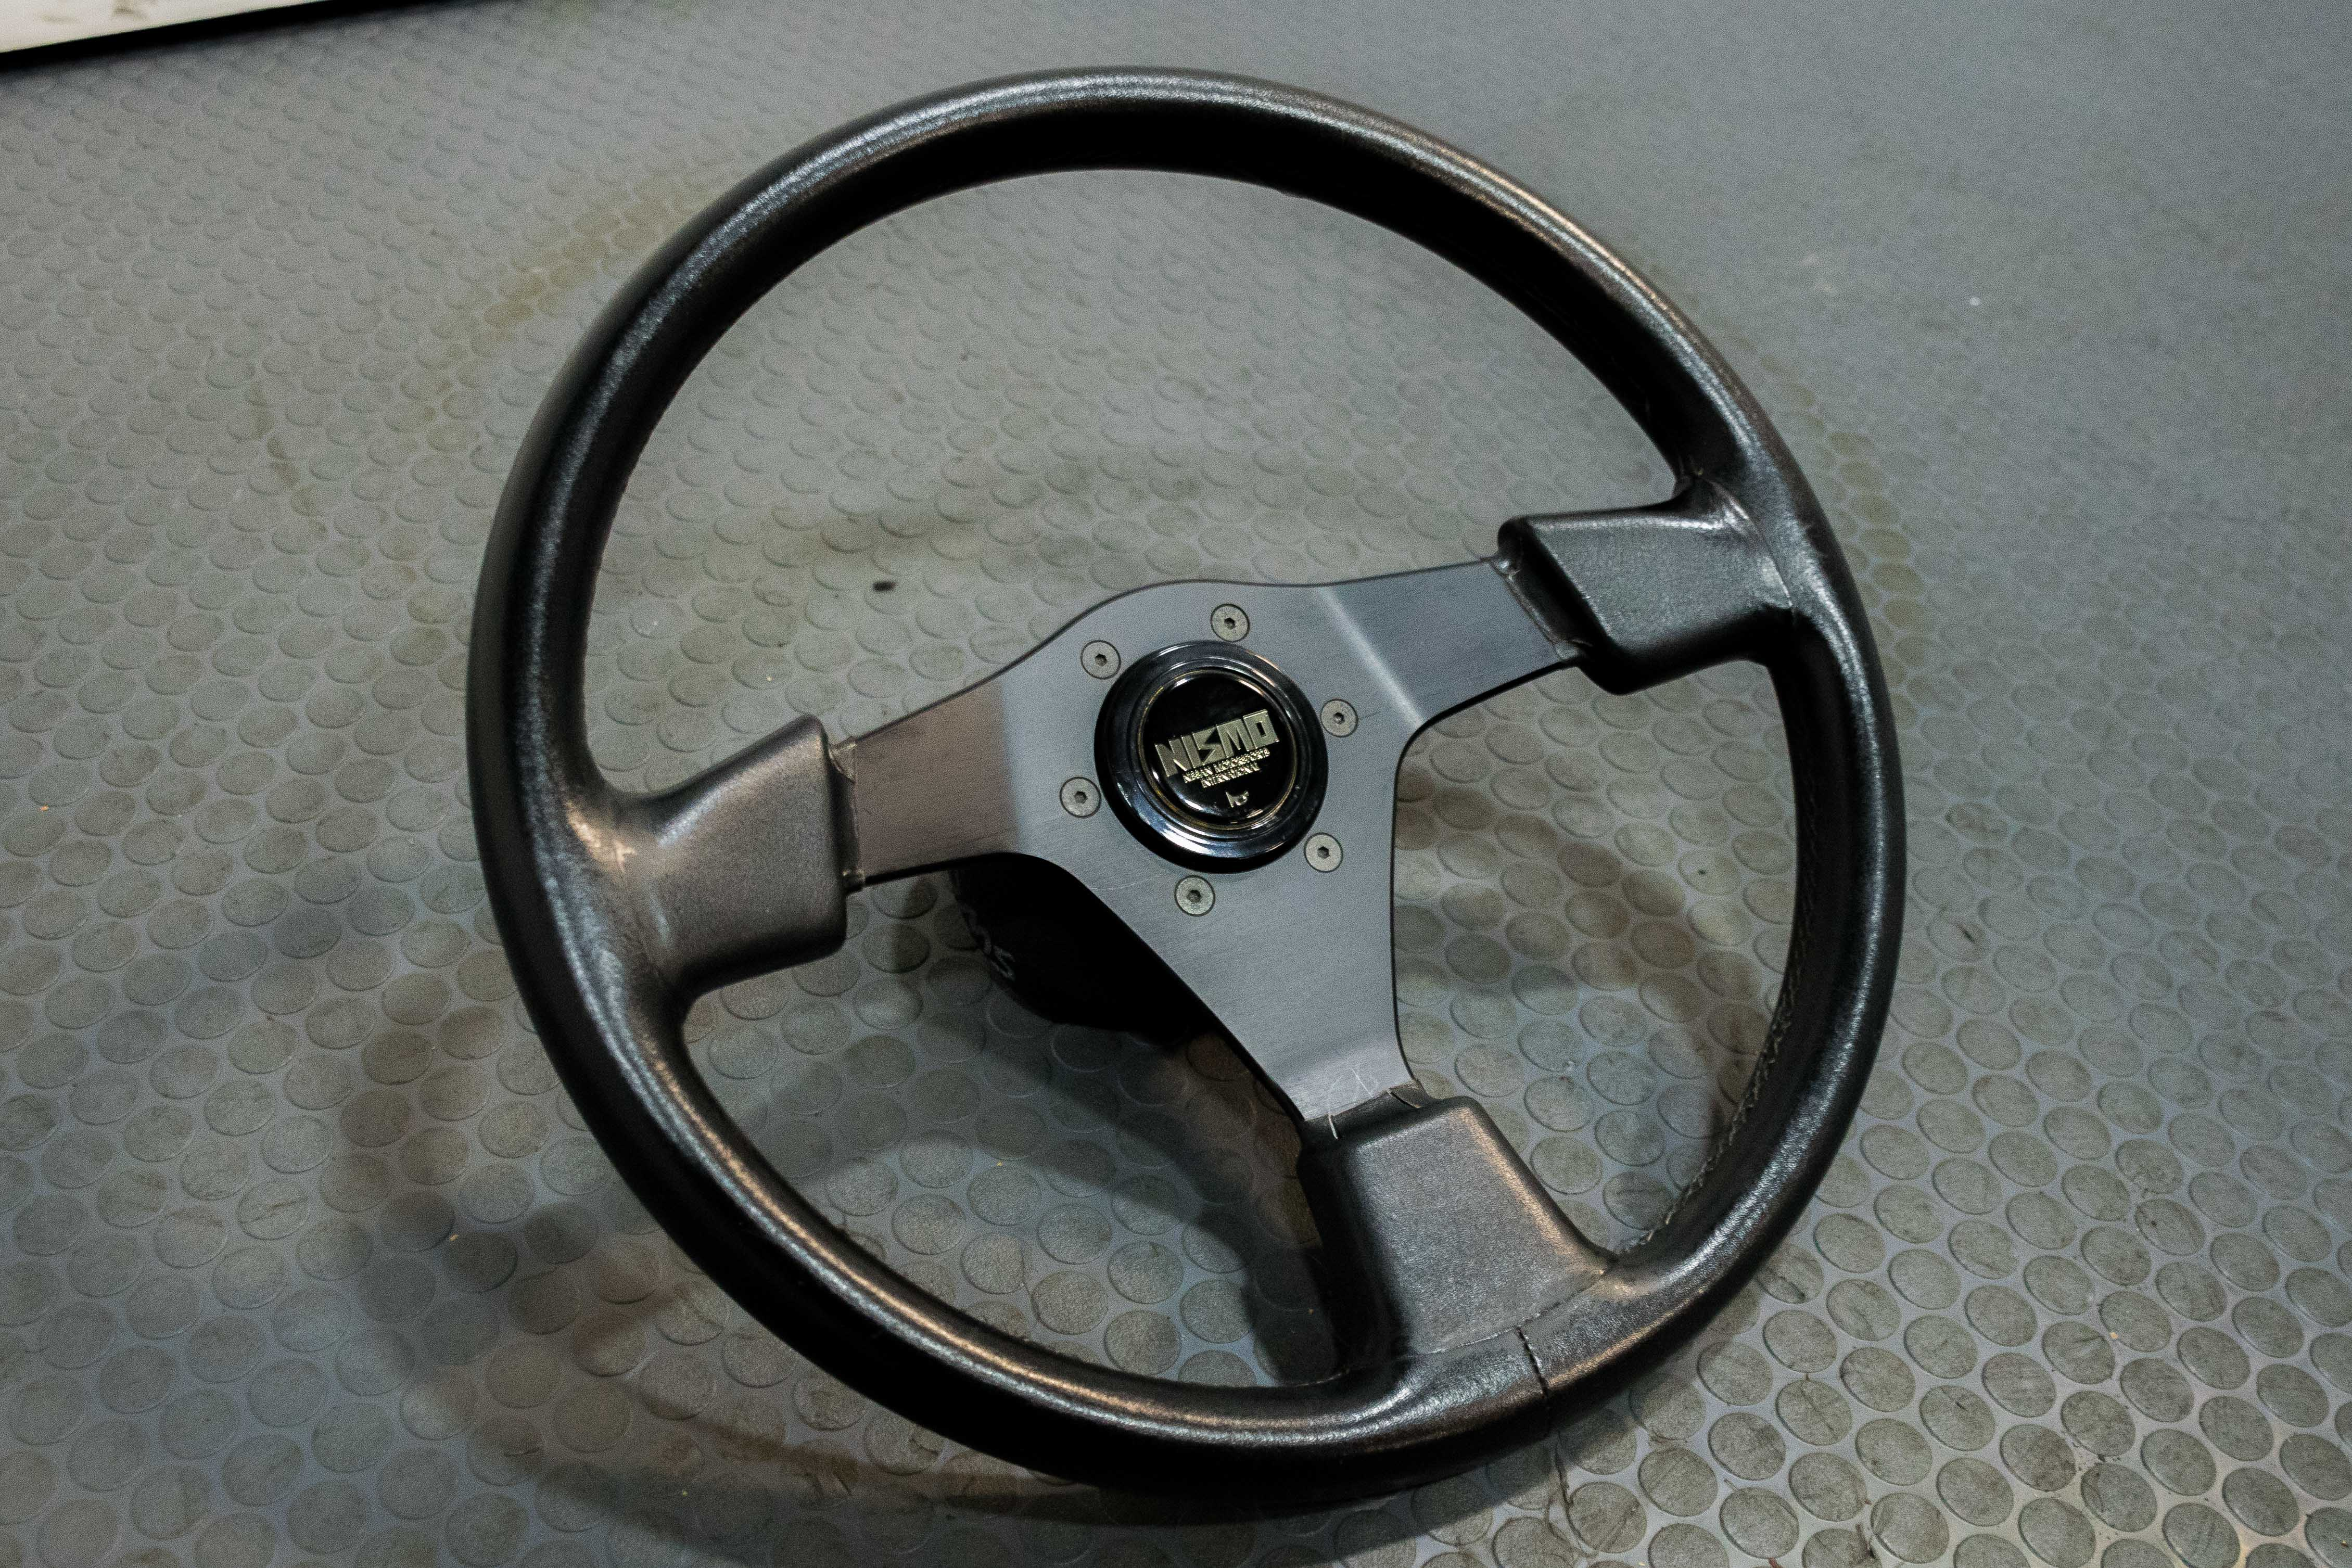 Jdm Used Personal Steering Wheel With Authentic Nismo Horn Button On Nissan Hub Steering Wheels J Spec Auto Sports